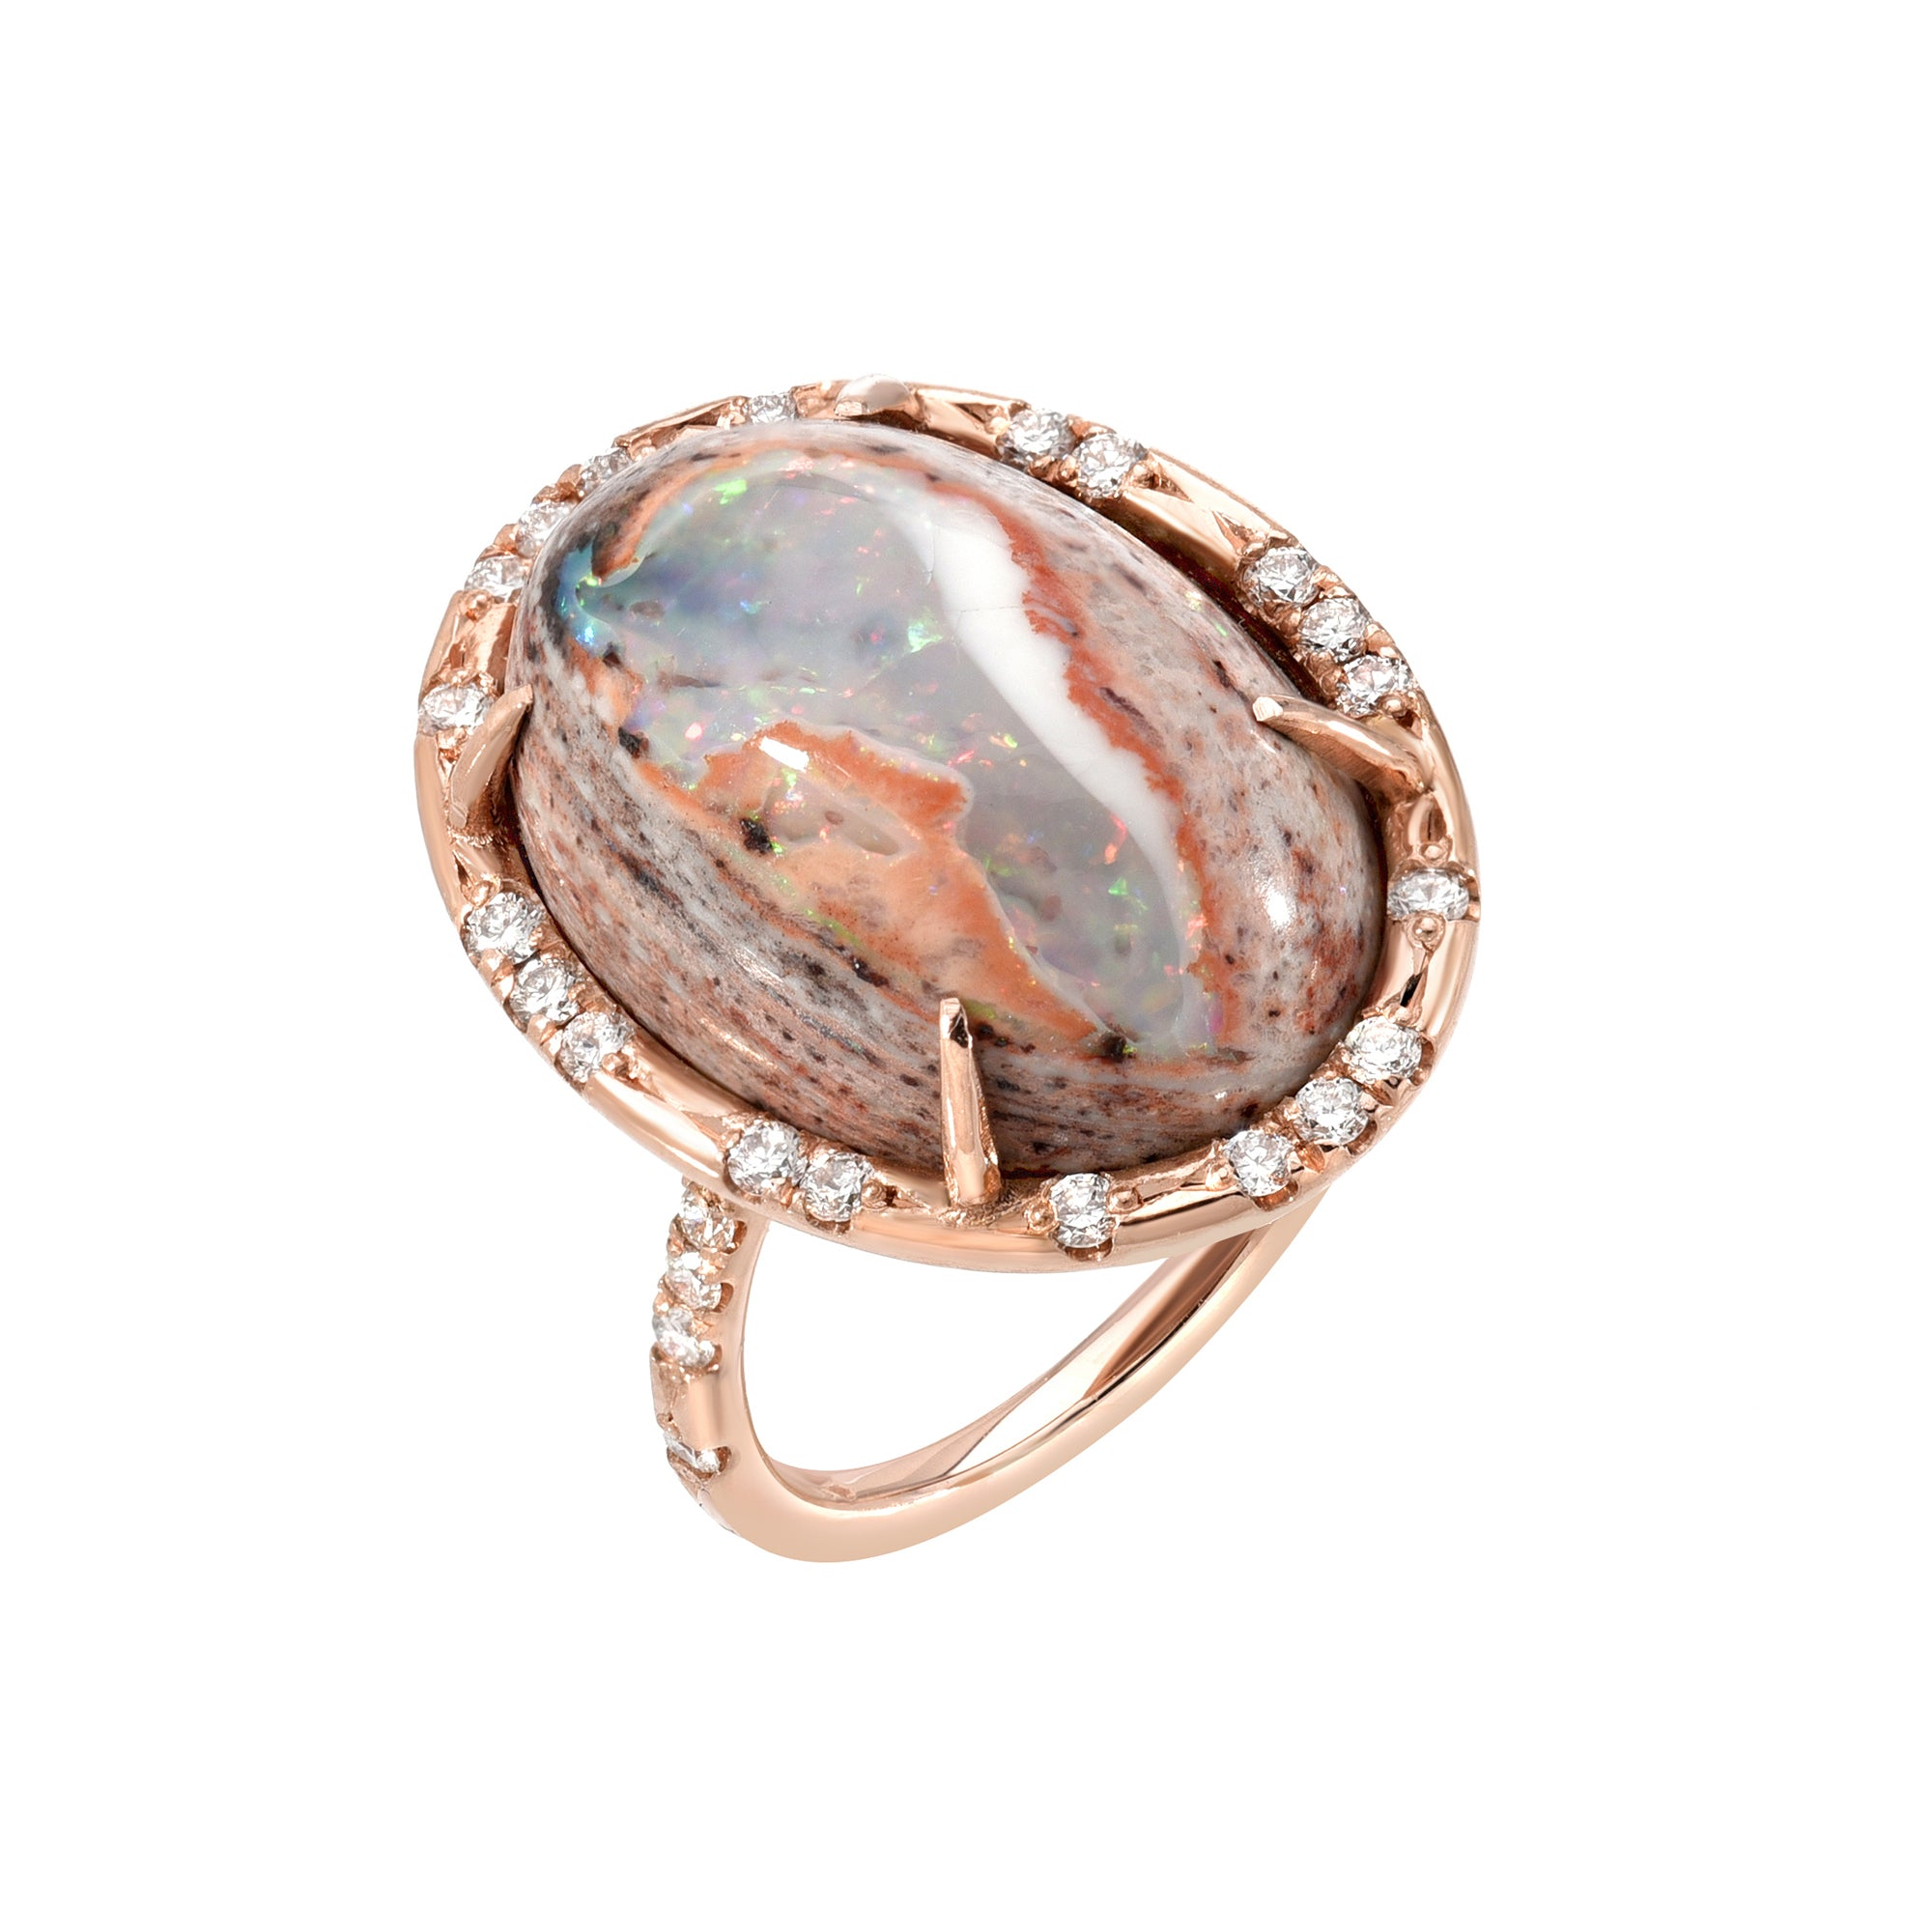 One of a Kind Mexican Matrix Opal Ring